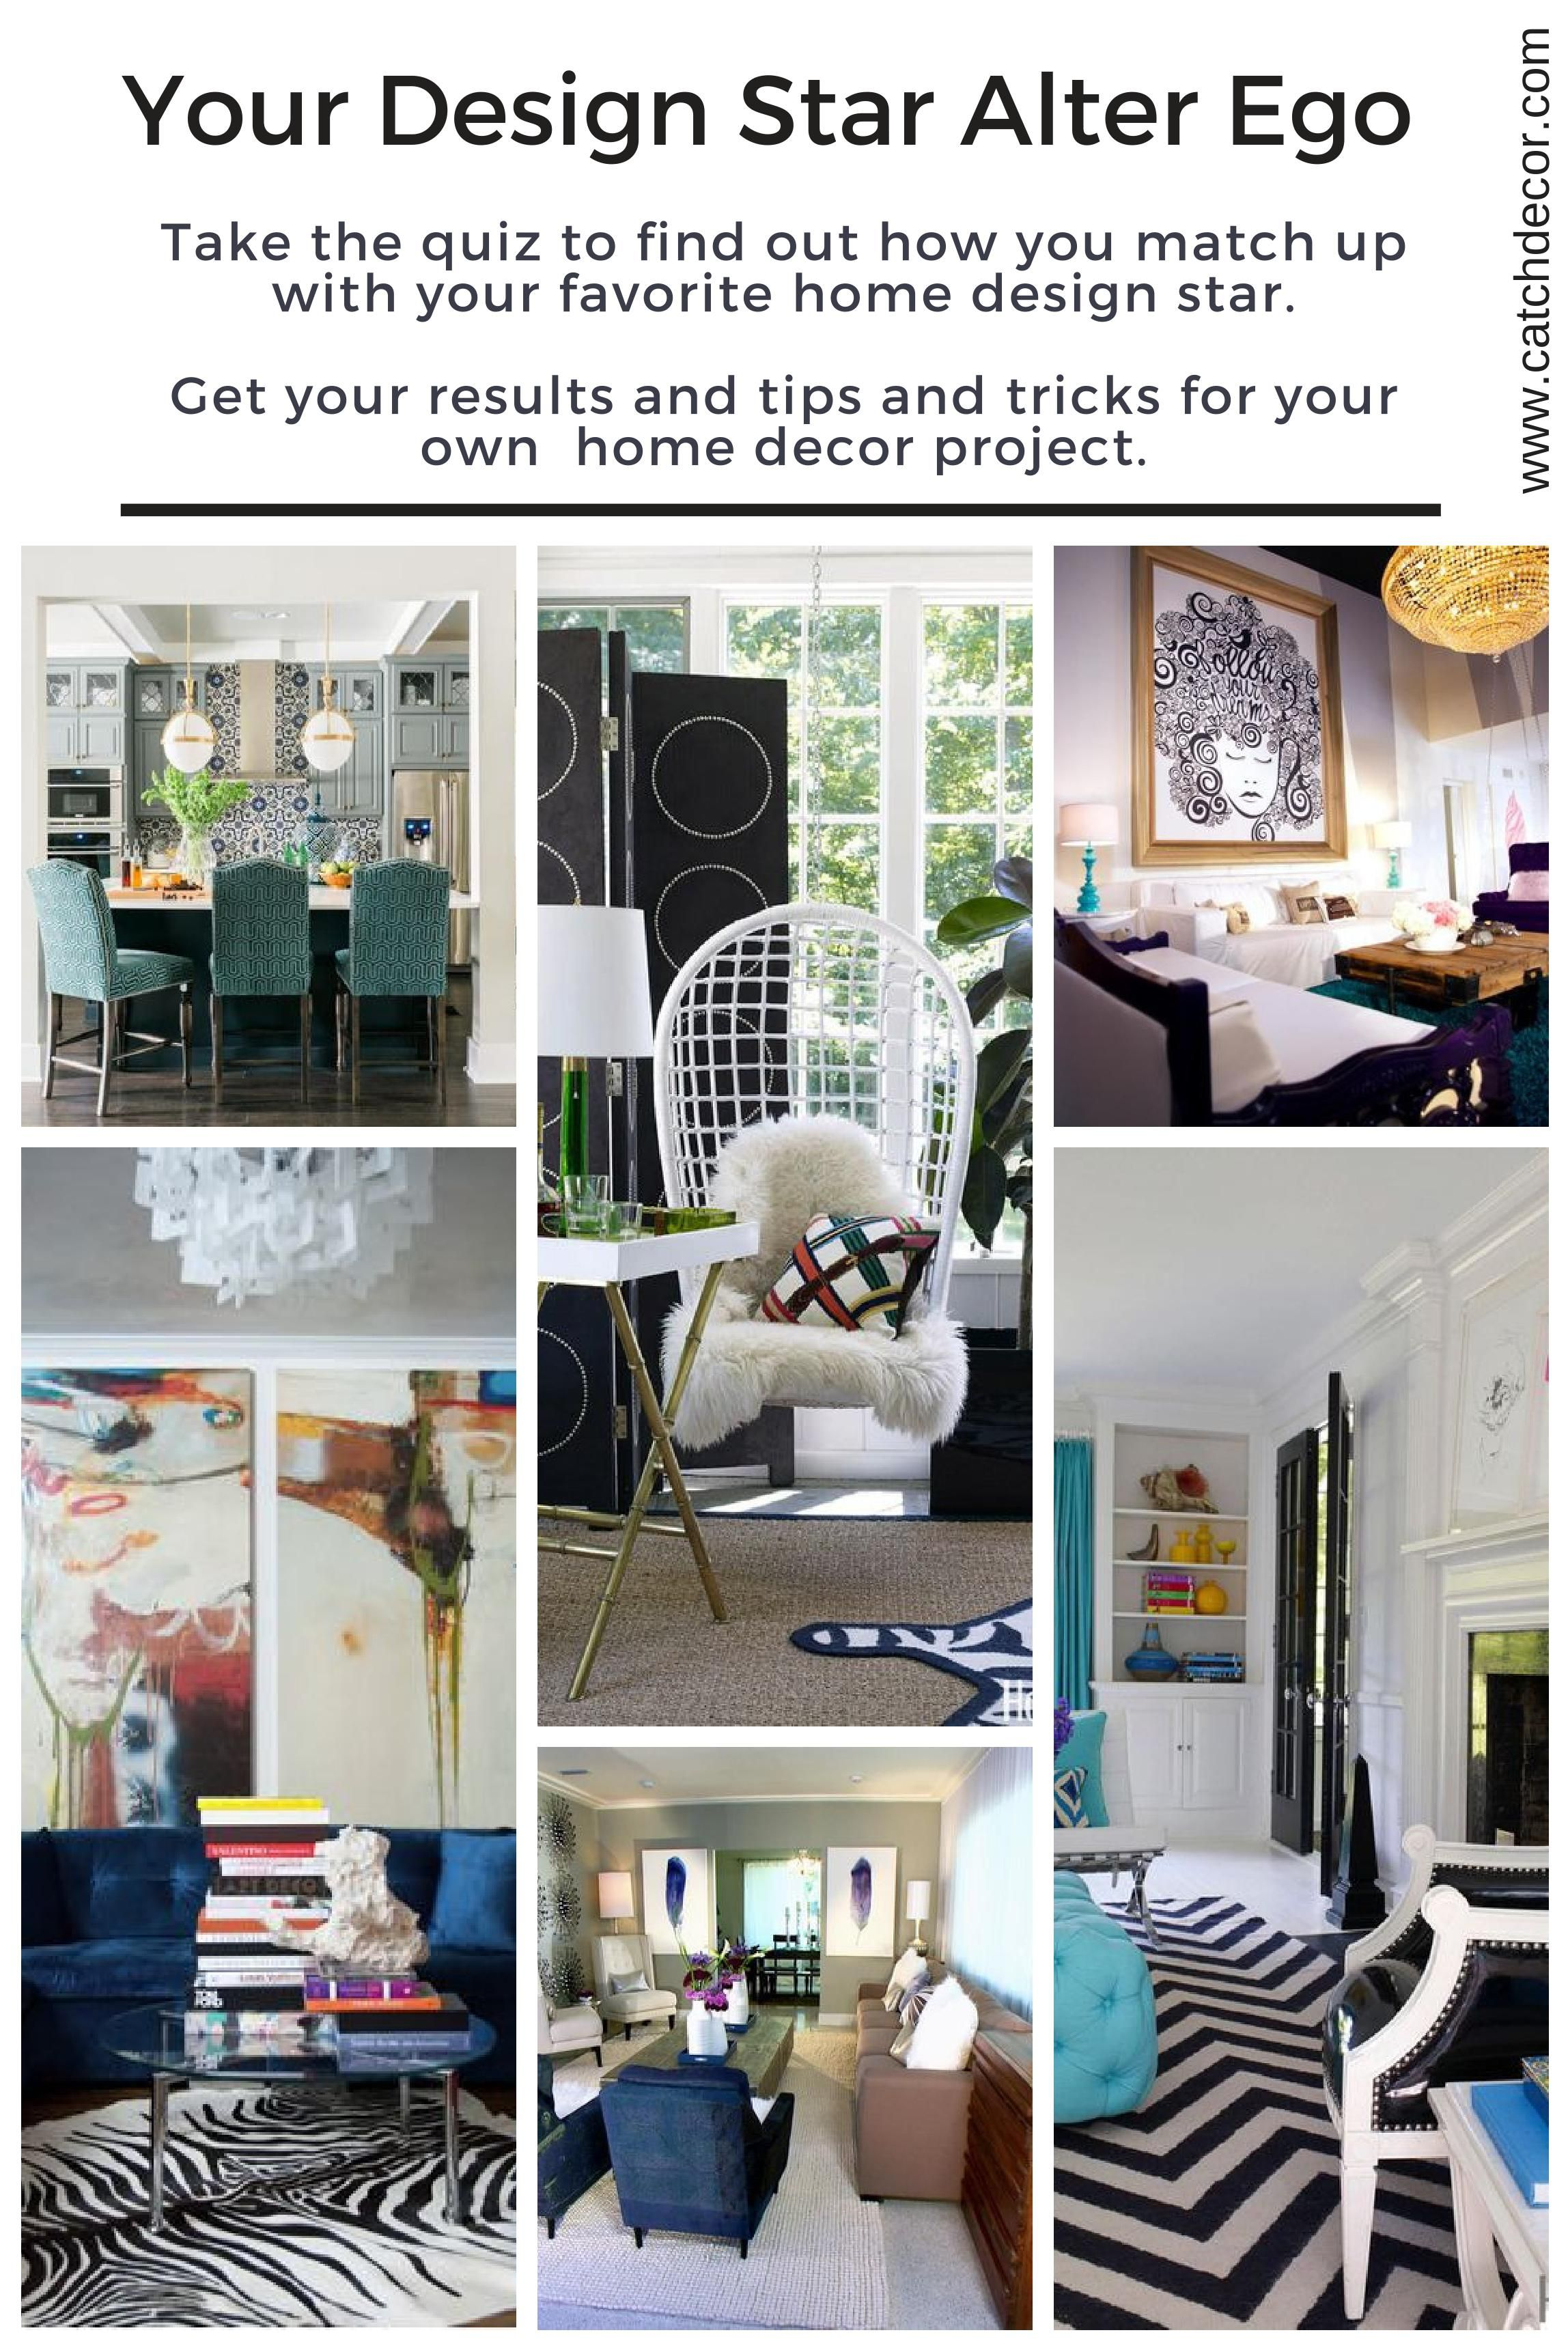 Take the quiz to see which design pro's style you most resemble.  These are top stars in the design world and represent a mix of styles.  Answer a few easy questions about your style and likes and dislikes to determine your match.  Your results will not only match you to your design star but also provide tips to help with your home decor challenges.    The celebrities include some of my favorite designers I go to for my own inspiration like Jonathan Adler, David Bromstad and Tiffany Brooks.